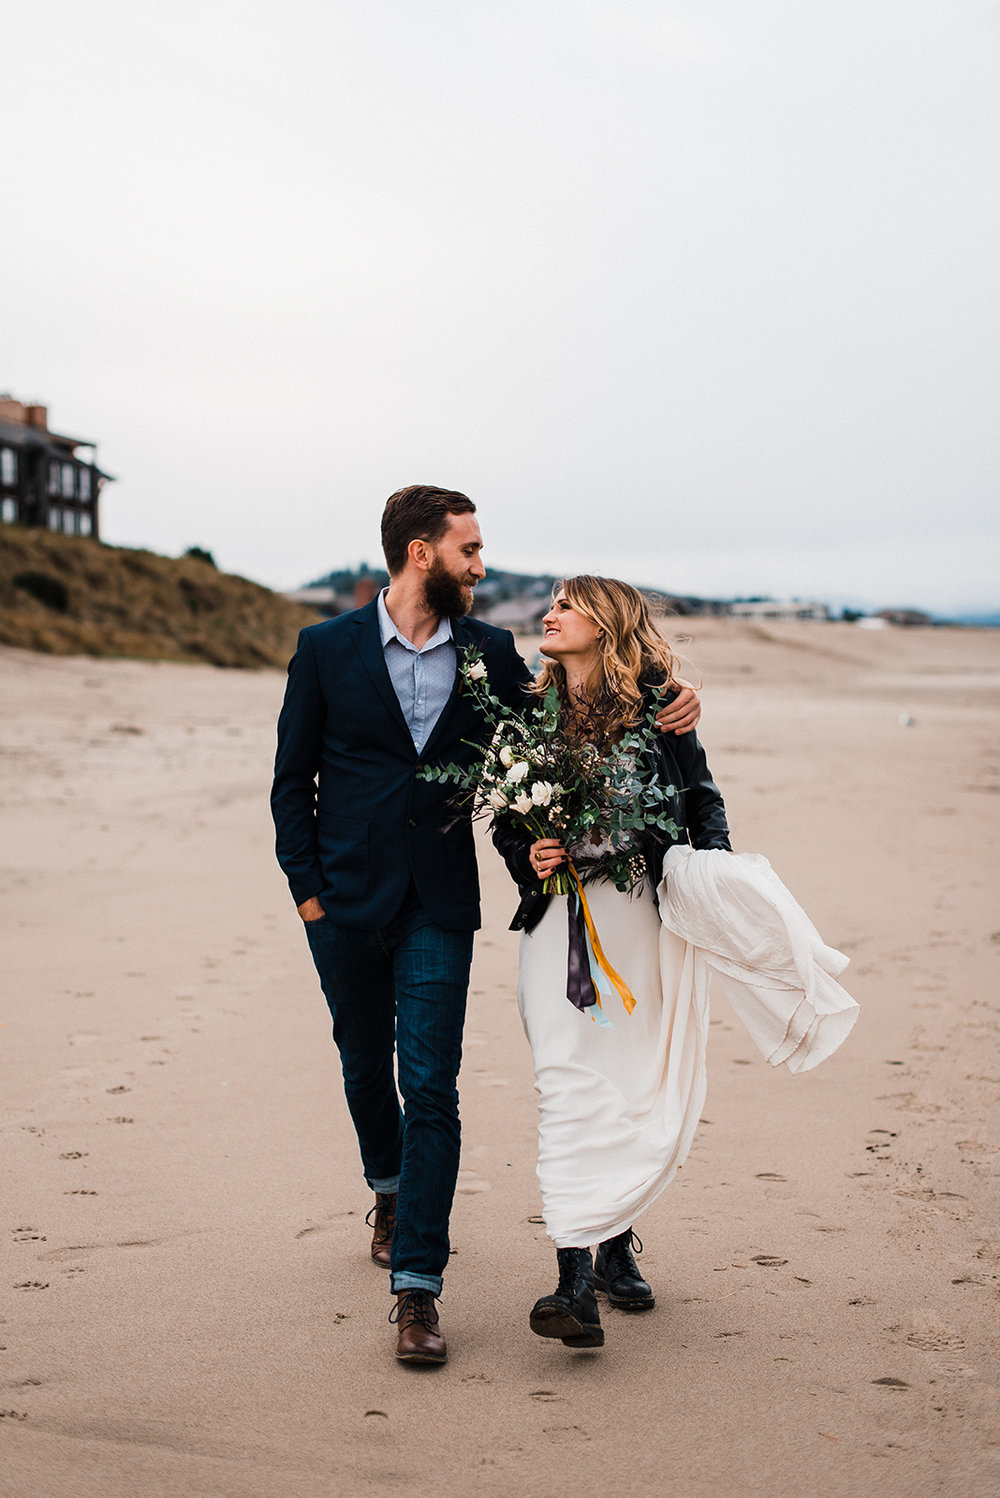 Oregon_Coast_Elopement_Wedding_The_Foxes_Photography_080.jpg